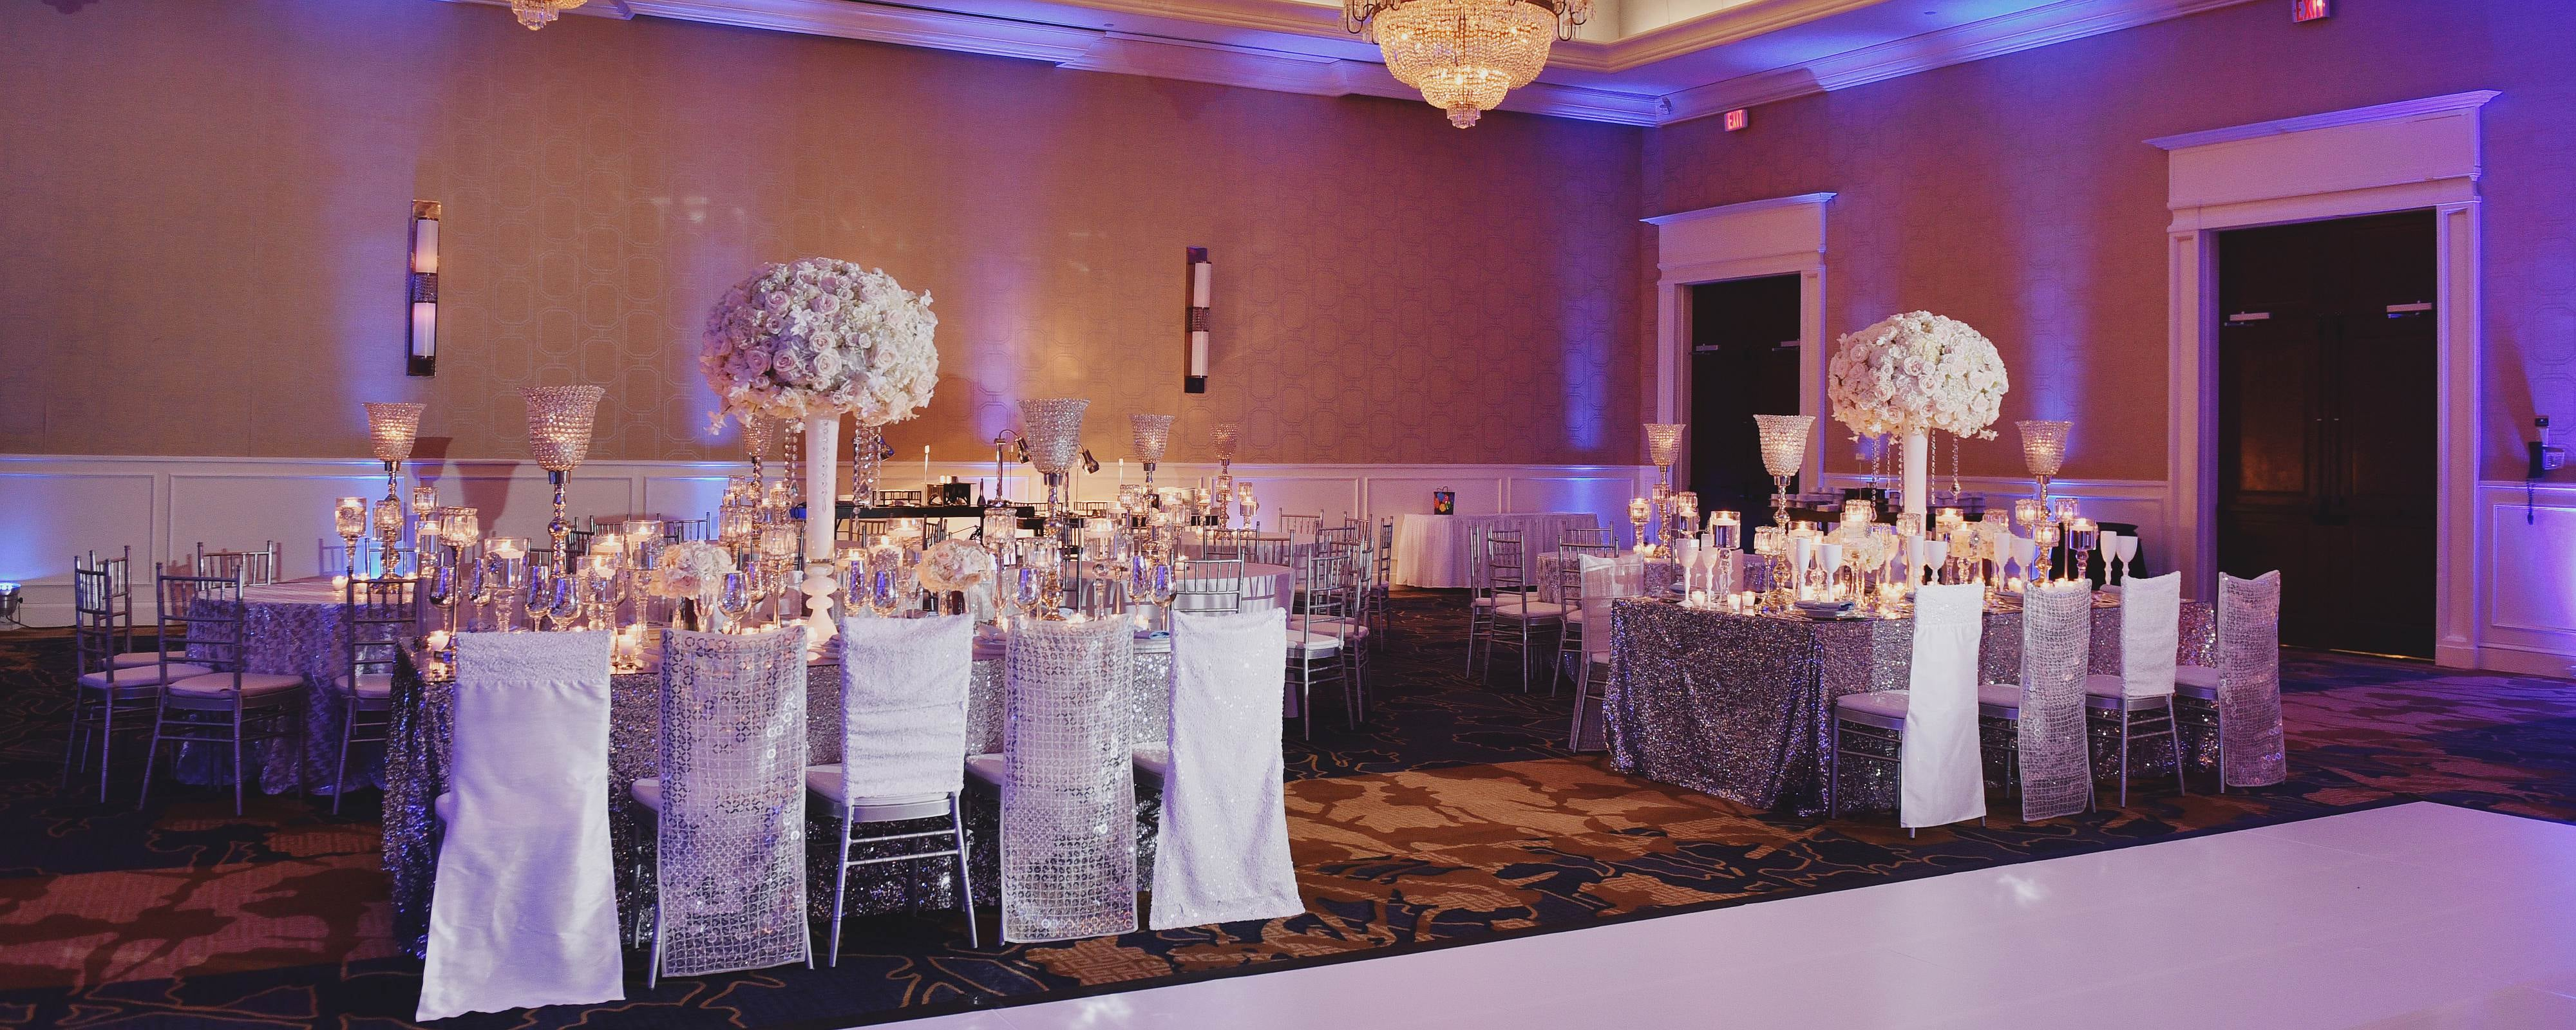 New orleans french quarter wedding venues jw marriott new orleans view photos junglespirit Choice Image